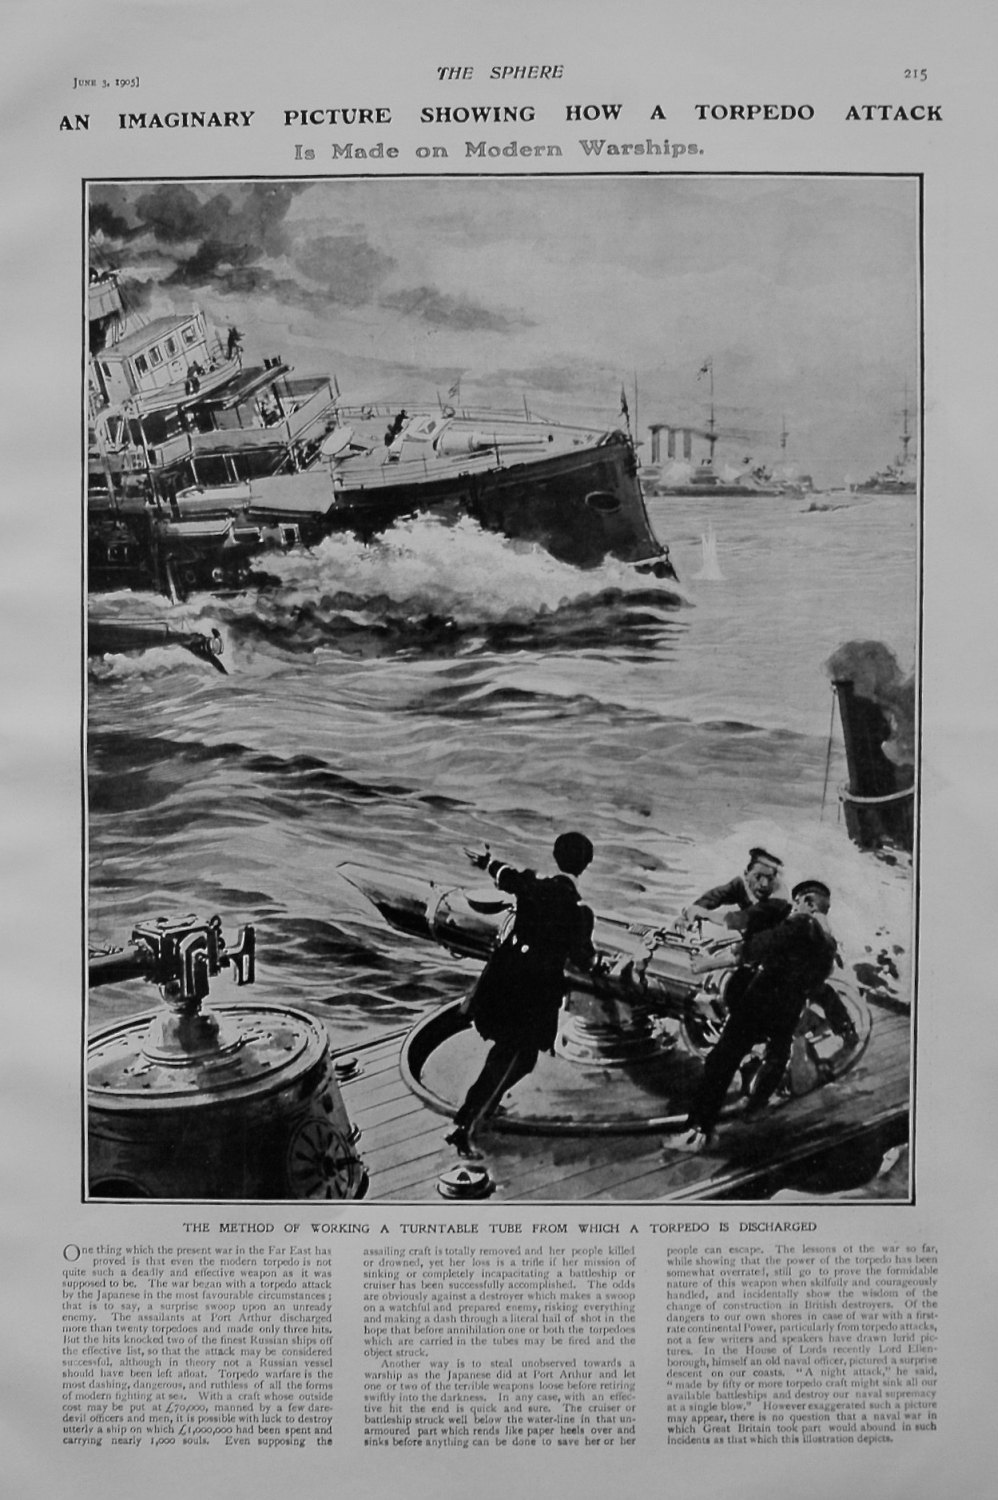 An Imaginary Picture showing How a Torpedo Attack is made on Modern Warship